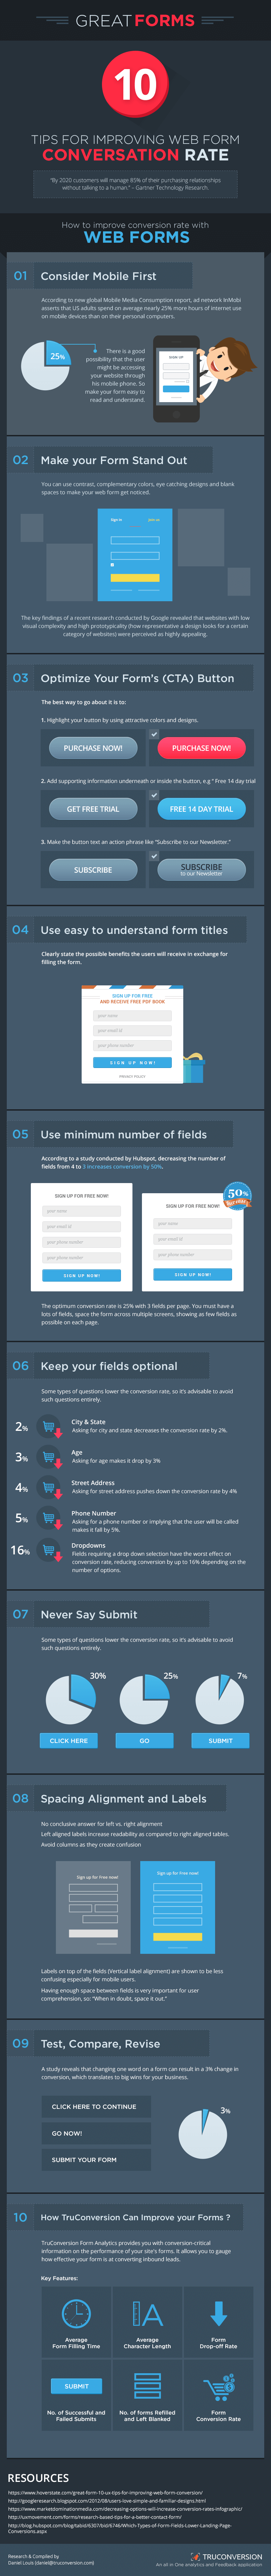 10 Tips to Improve Web Form Design to Boost Conversions #Infographic